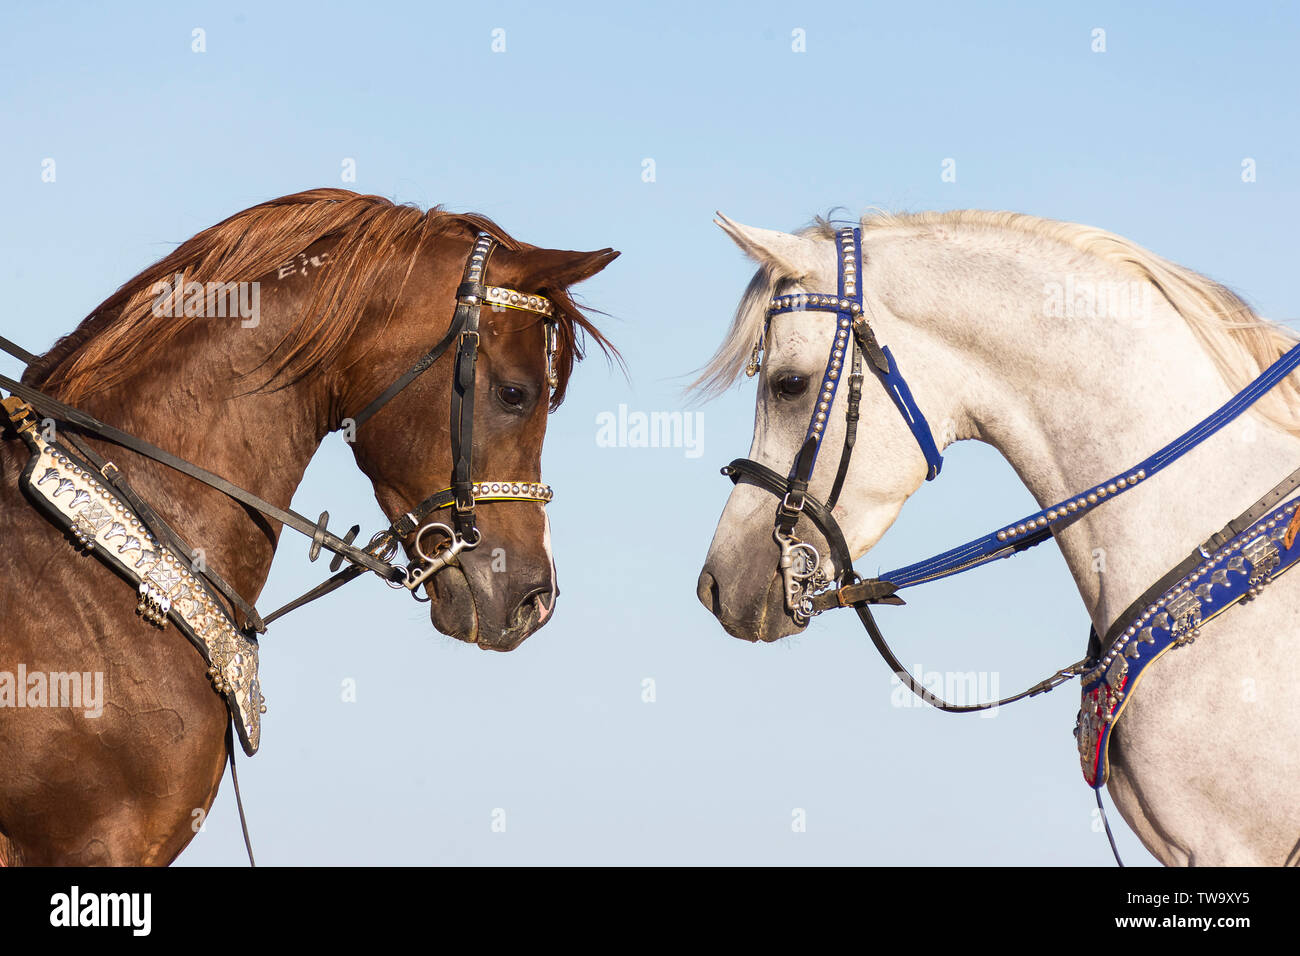 Arabian Horse Two Stallions With Bridle Nose To Nose Egypt Zaumzeug Bridle Tack Zaumzeug Bridle Tack Stock Photo Alamy